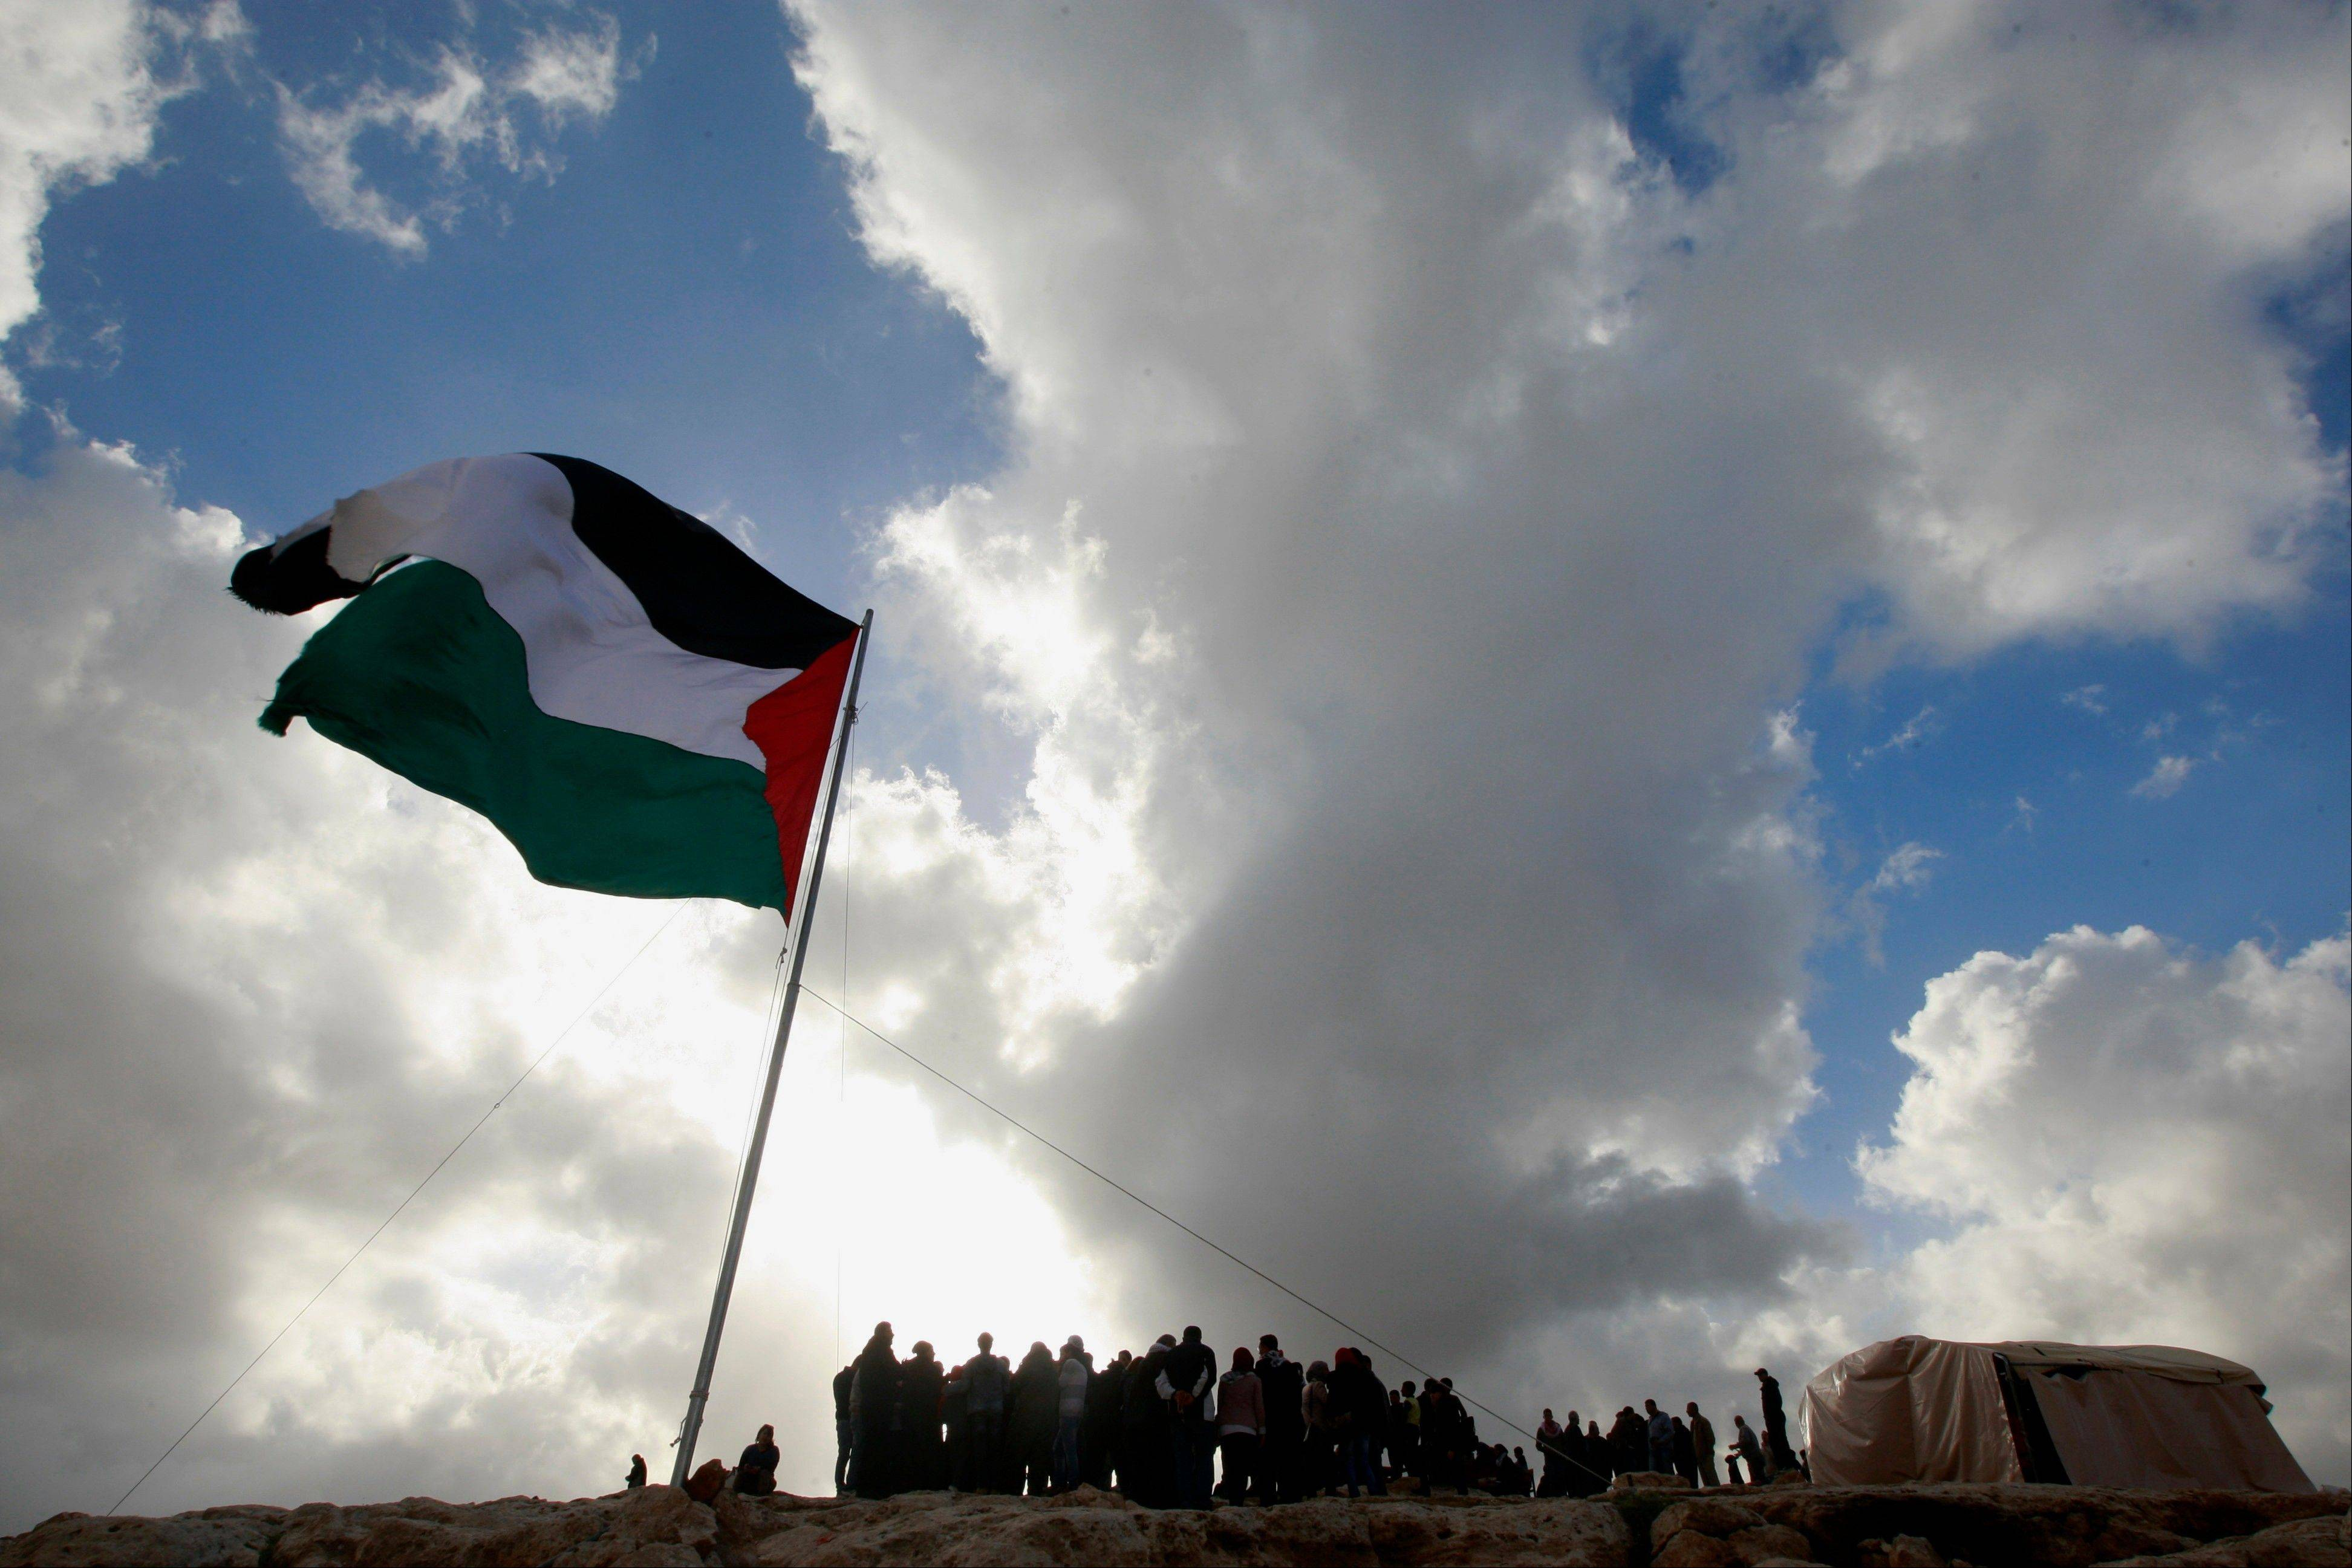 A Palestinian flag flies by a tent set up by activists in an area known as E1, near Jerusalem, Saturday.